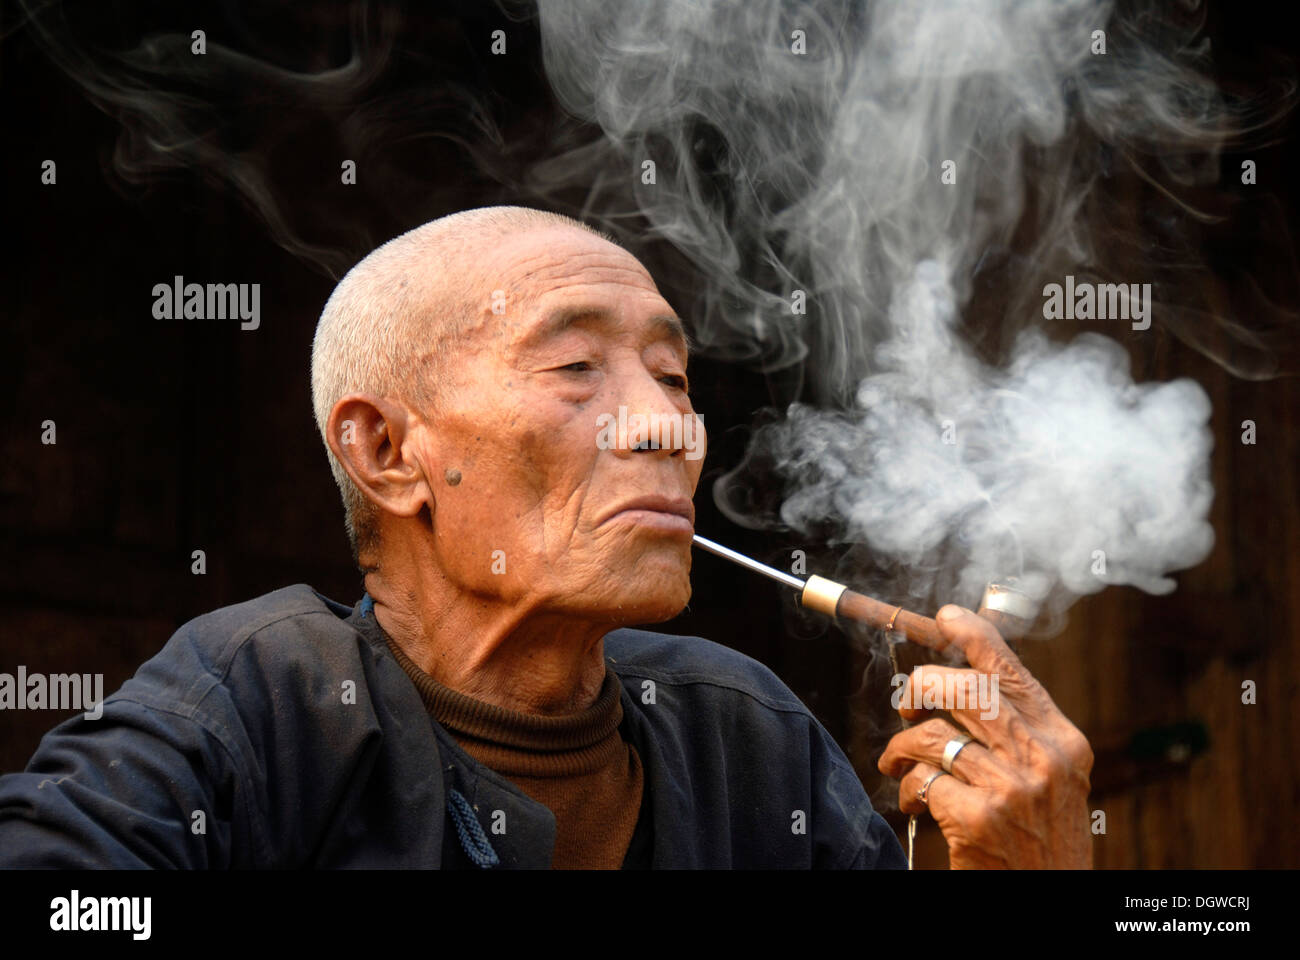 homme pipes Whats lesbiennes sexe comme